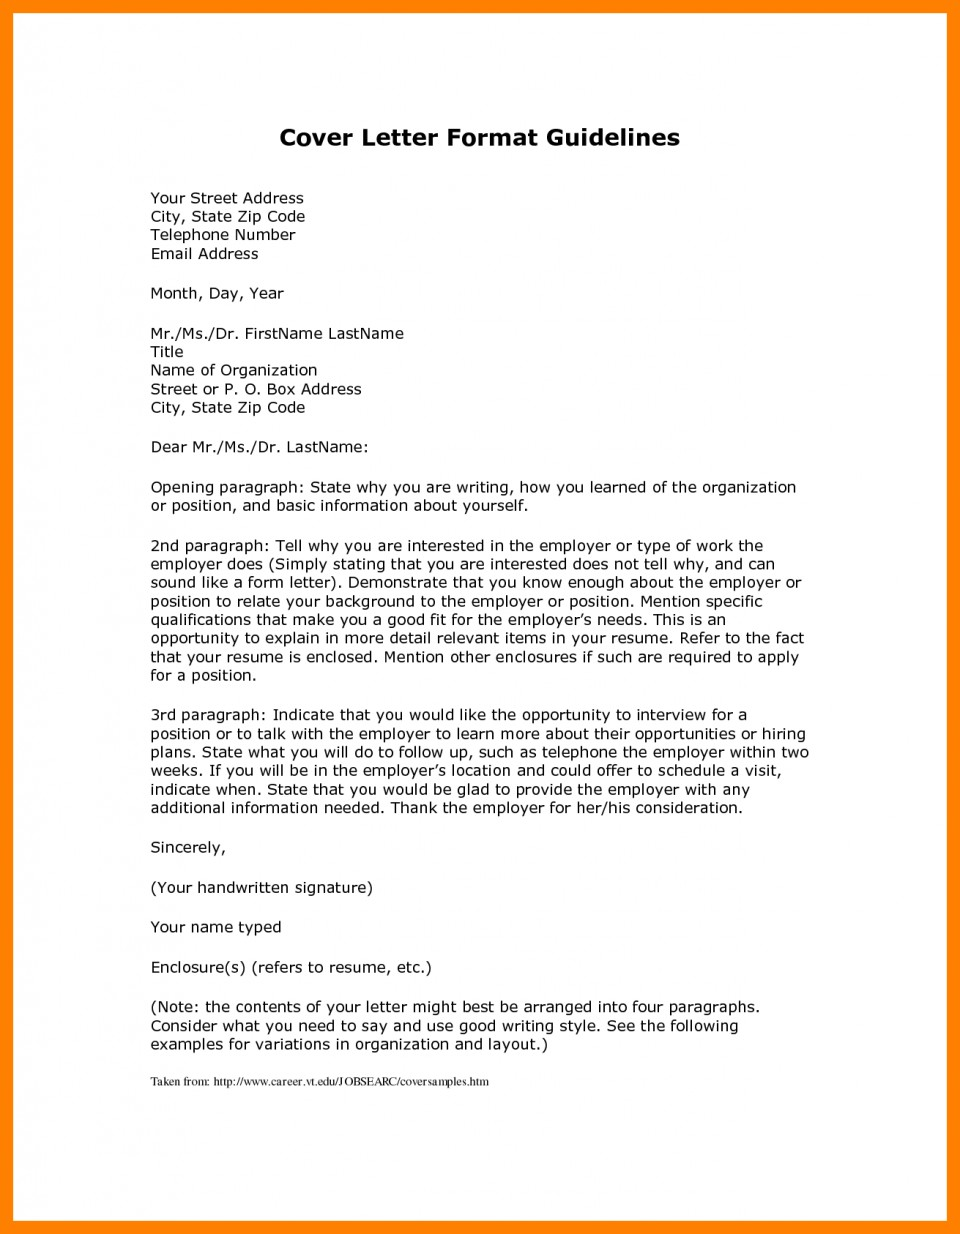 009 Essay Example Letter Format Samples Cover Unforgettable Formal In Hindi English Spm 960